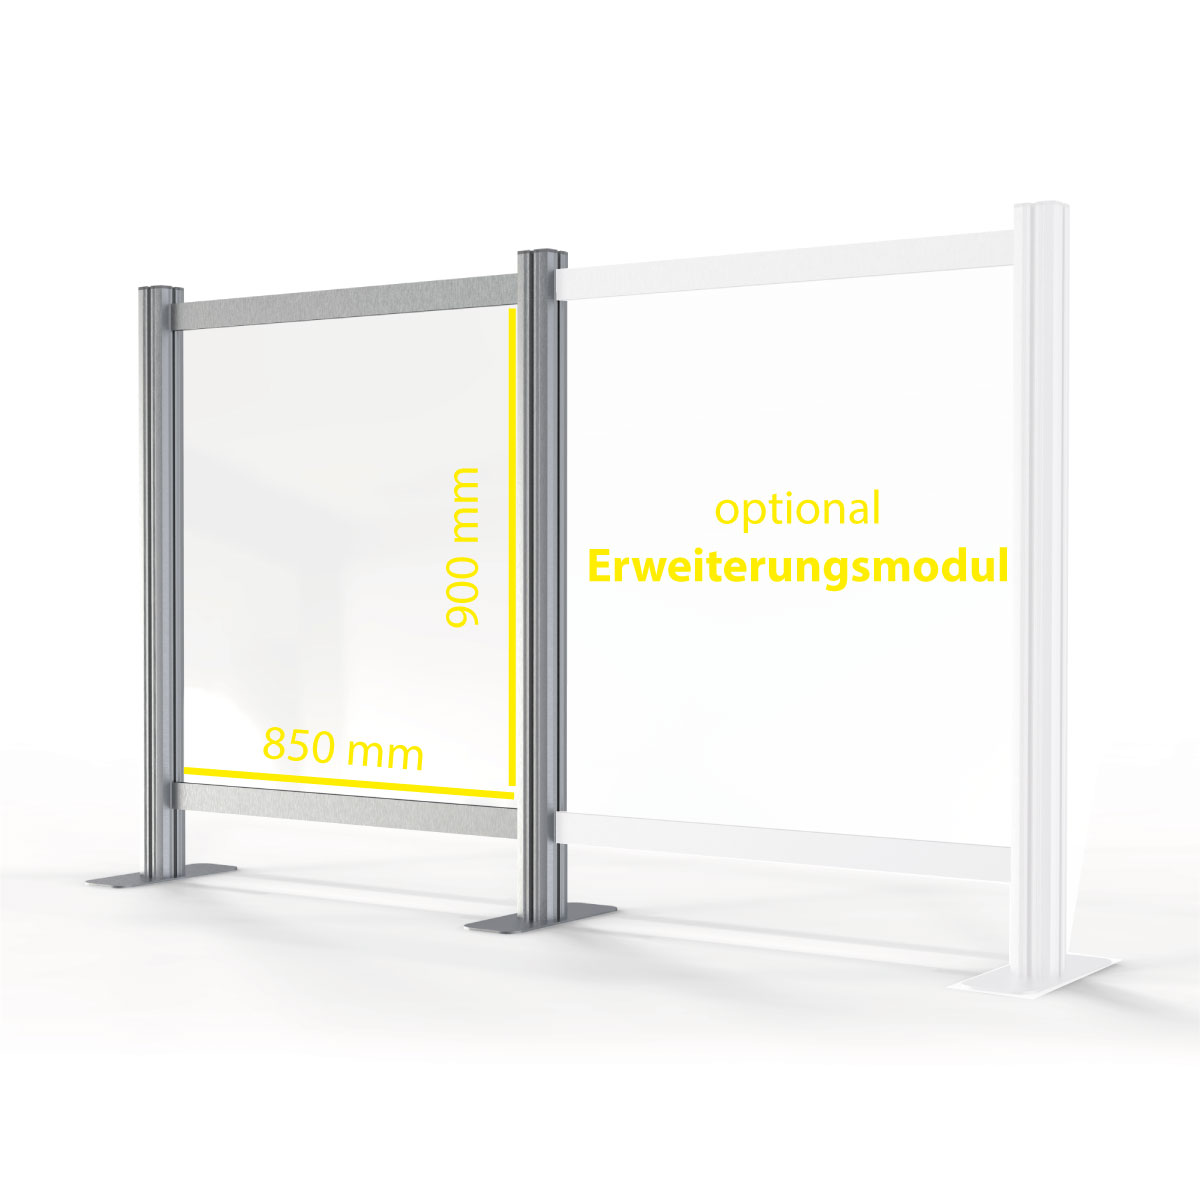 Sneeze guard made of acrylic glass with aluminum frame. Size S: 850 x 900 mm